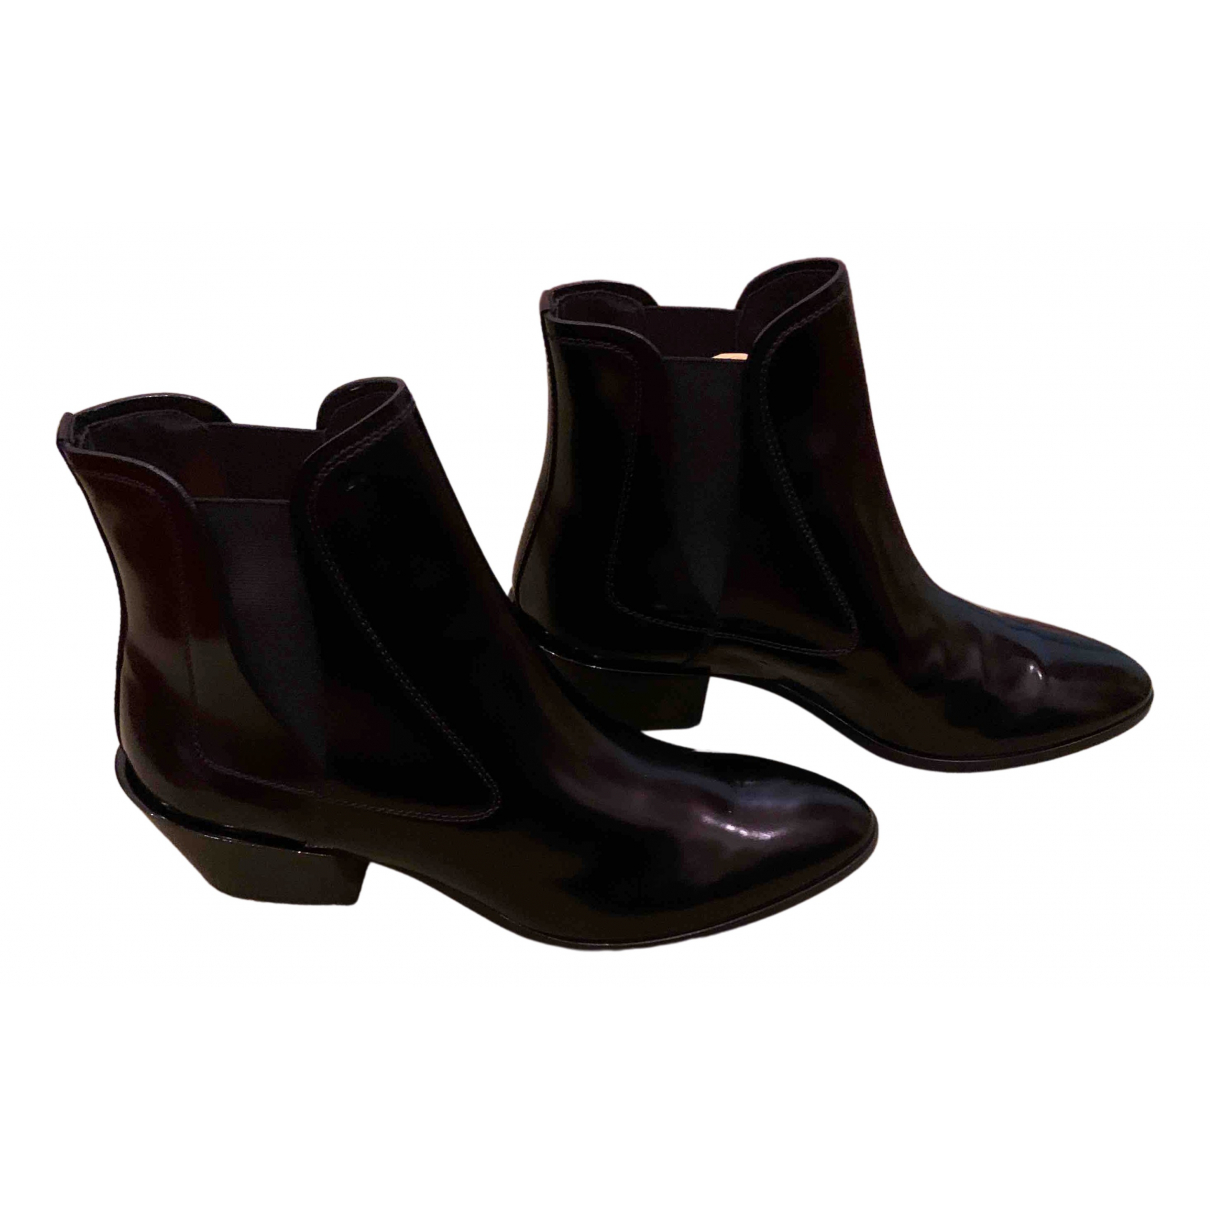 Tod's N Black Leather Ankle boots for Women 39 EU